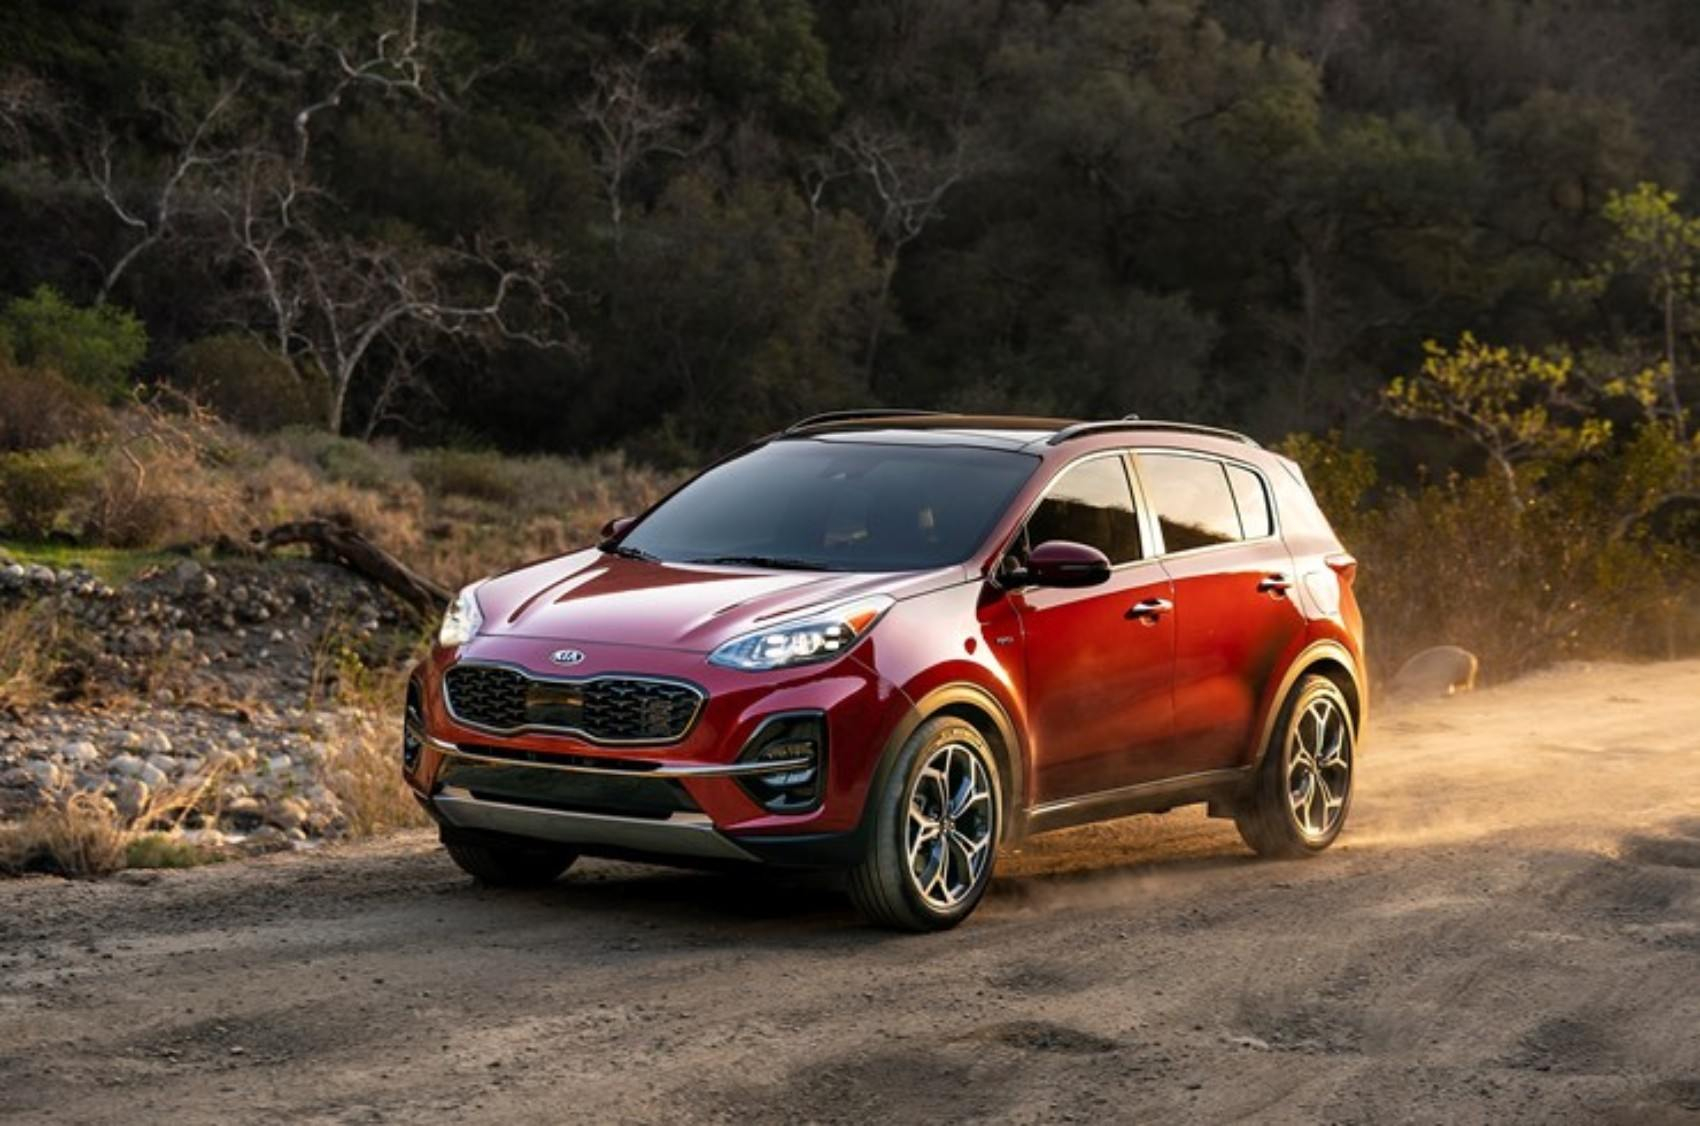 2020 Kia Sportage: Refreshed & Ready To Mingle - 2022 Kia Optima Lx, Color Concept, Cargo Capacity